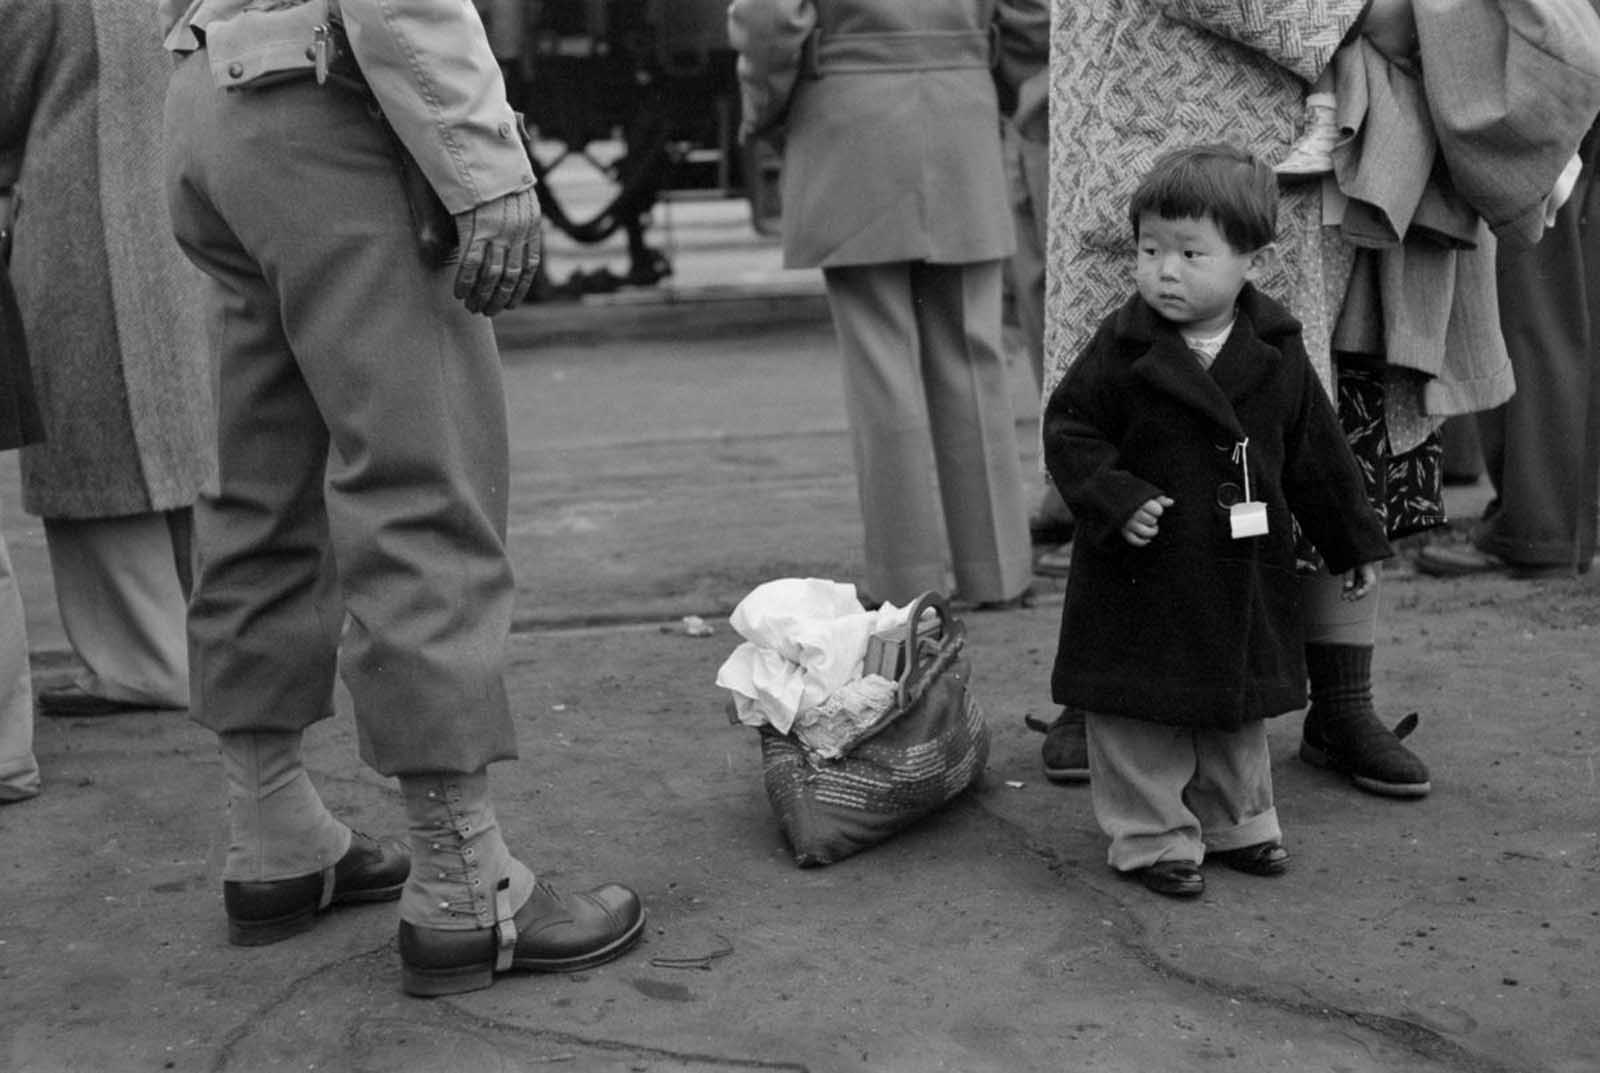 A child looks at a soldier as he assembles for evacuation with his family.